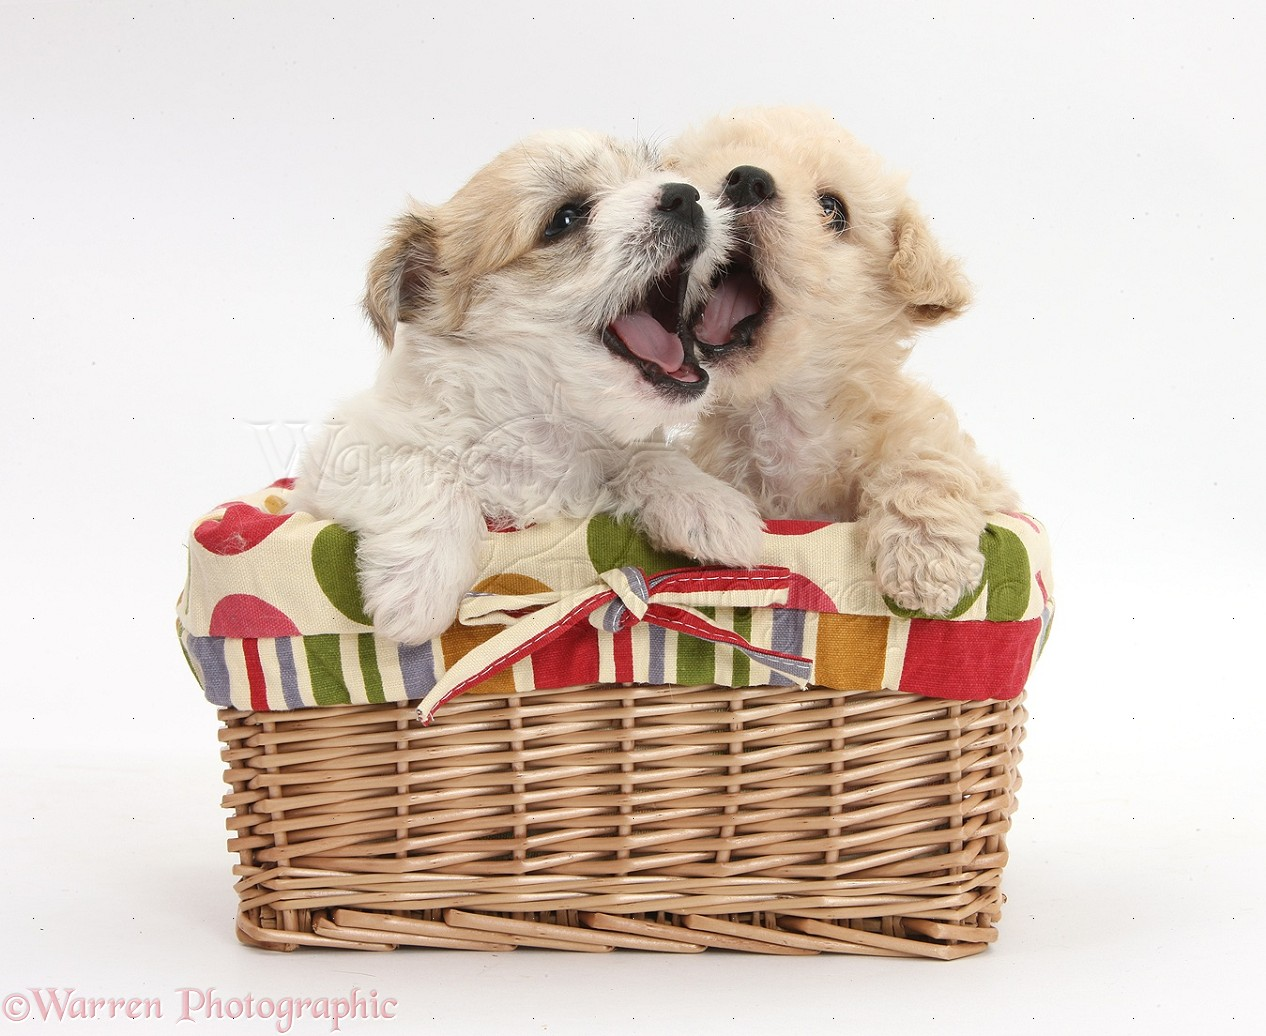 Dogs Cute Bichon X Yorkie Puppies In A Basket Photo Wp37384